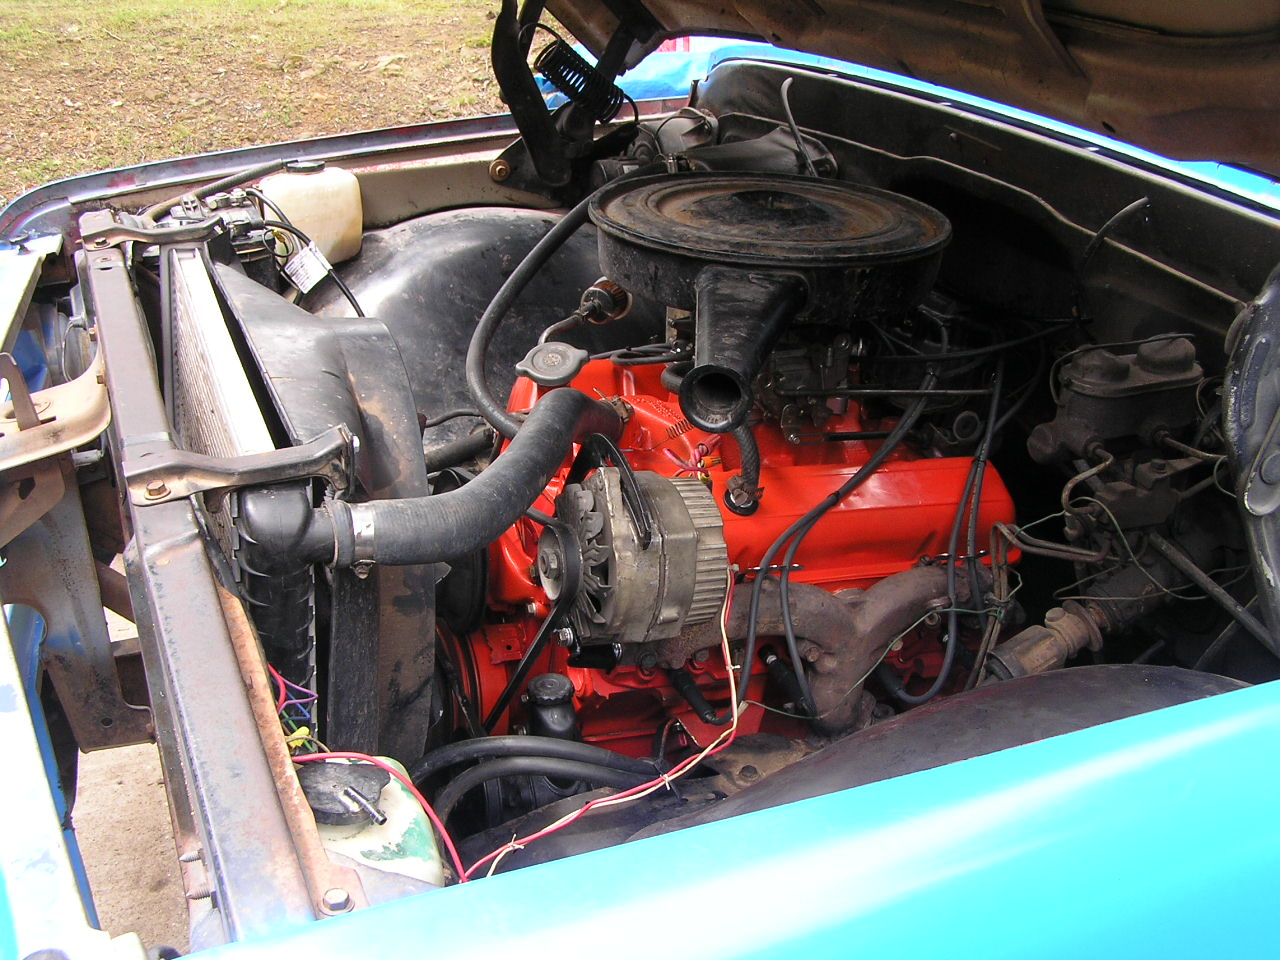 hight resolution of 350 small block chevy engine small block chevy 327 engine 350 small block chevy engine diagram